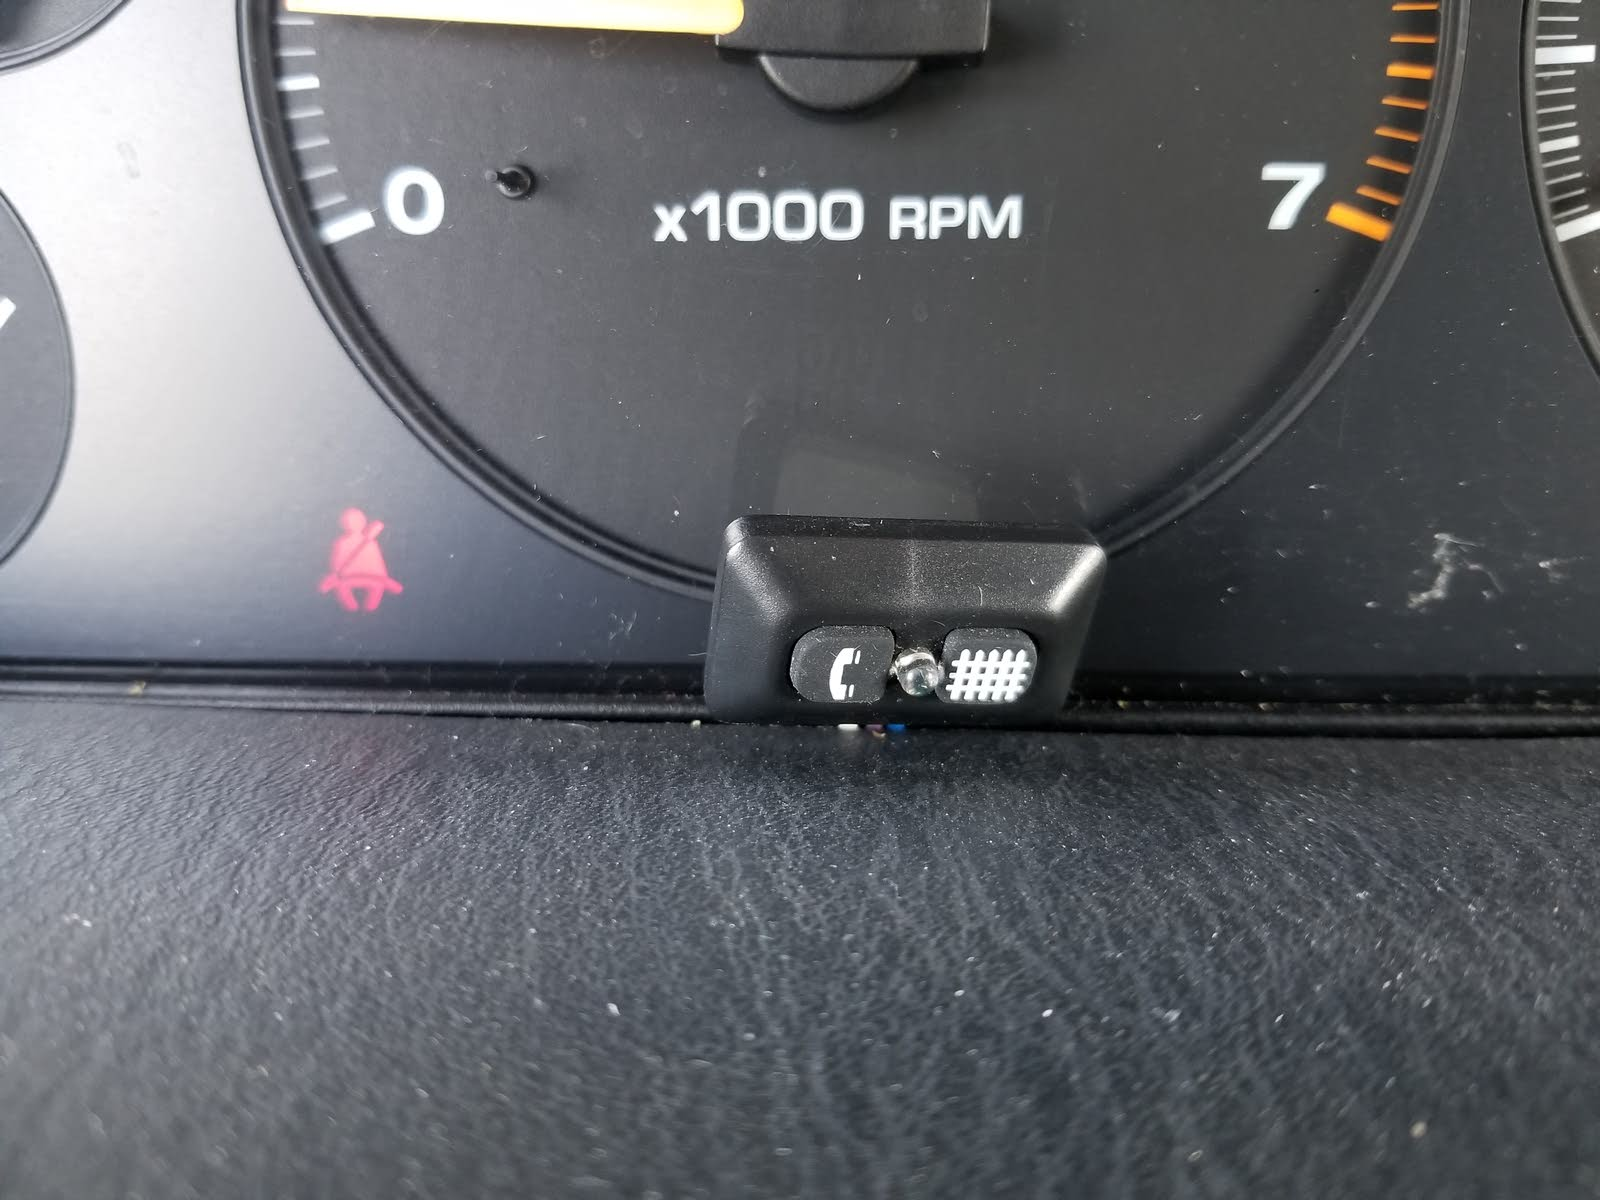 My Battery Keeps Draining After A Few Days And I Noticed This Little Gadget  Has A Blue Light Blinking. Is This Stock Or Aftermarket?